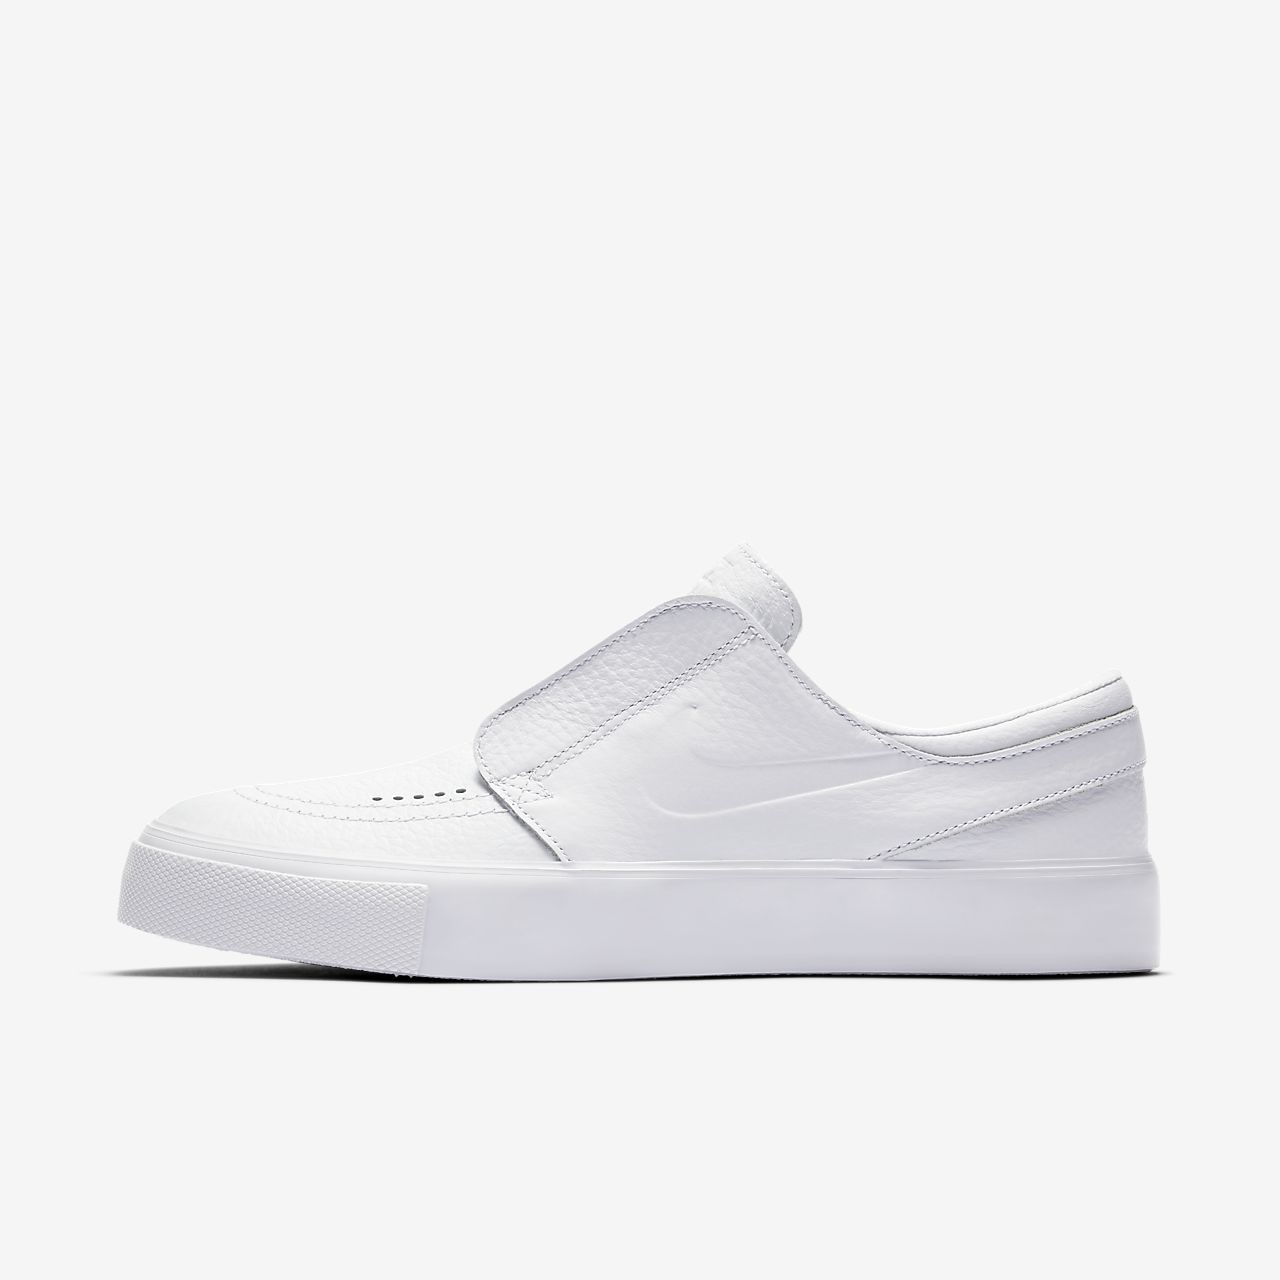 57a1ad5f579622 nike sb slip on homme